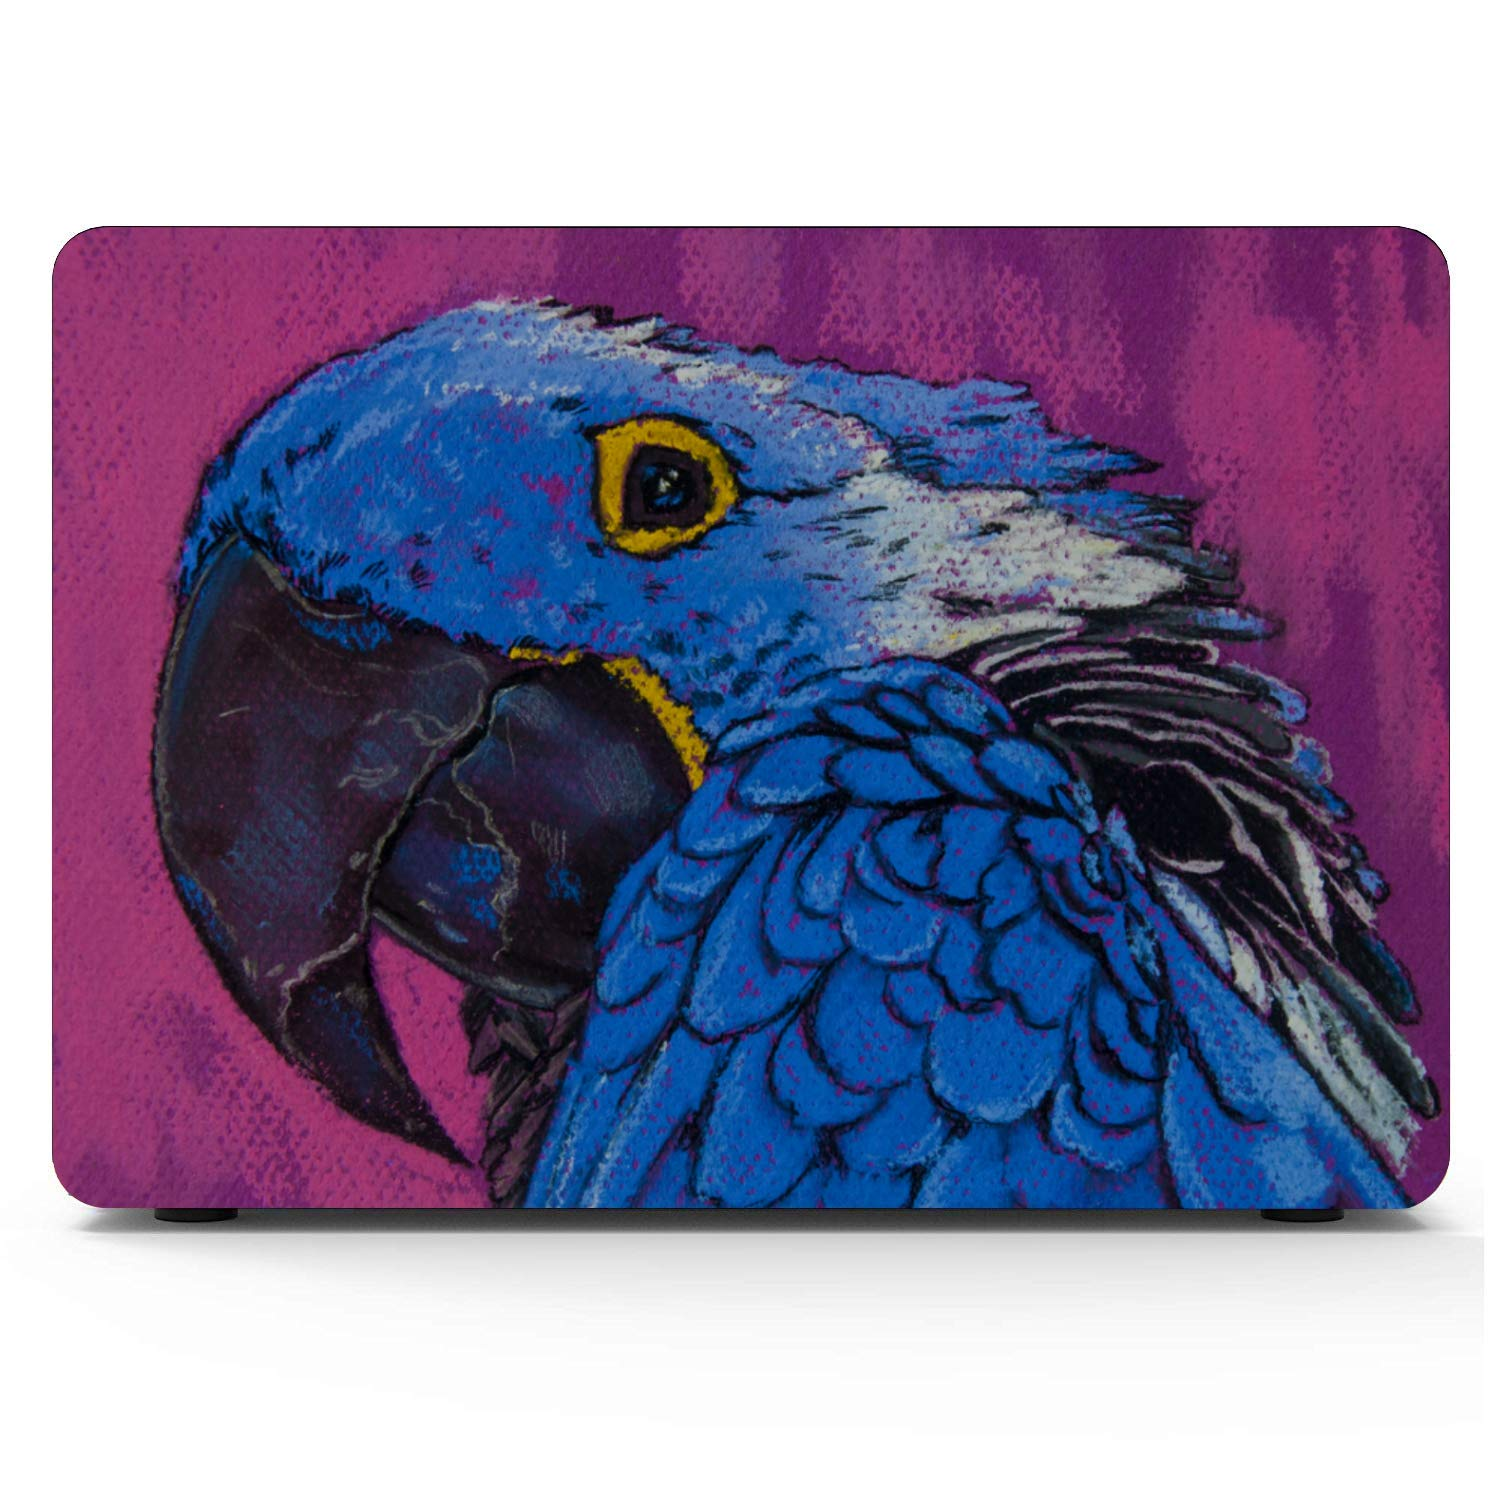 2018 MacBook Air Case Smart Cute Bird Parrot Oil Painting Plastic Hard Shell Compatible Mac Air 11 Pro 13 15 MacBook Air Cases Protection for MacBook 2016-2019 Version